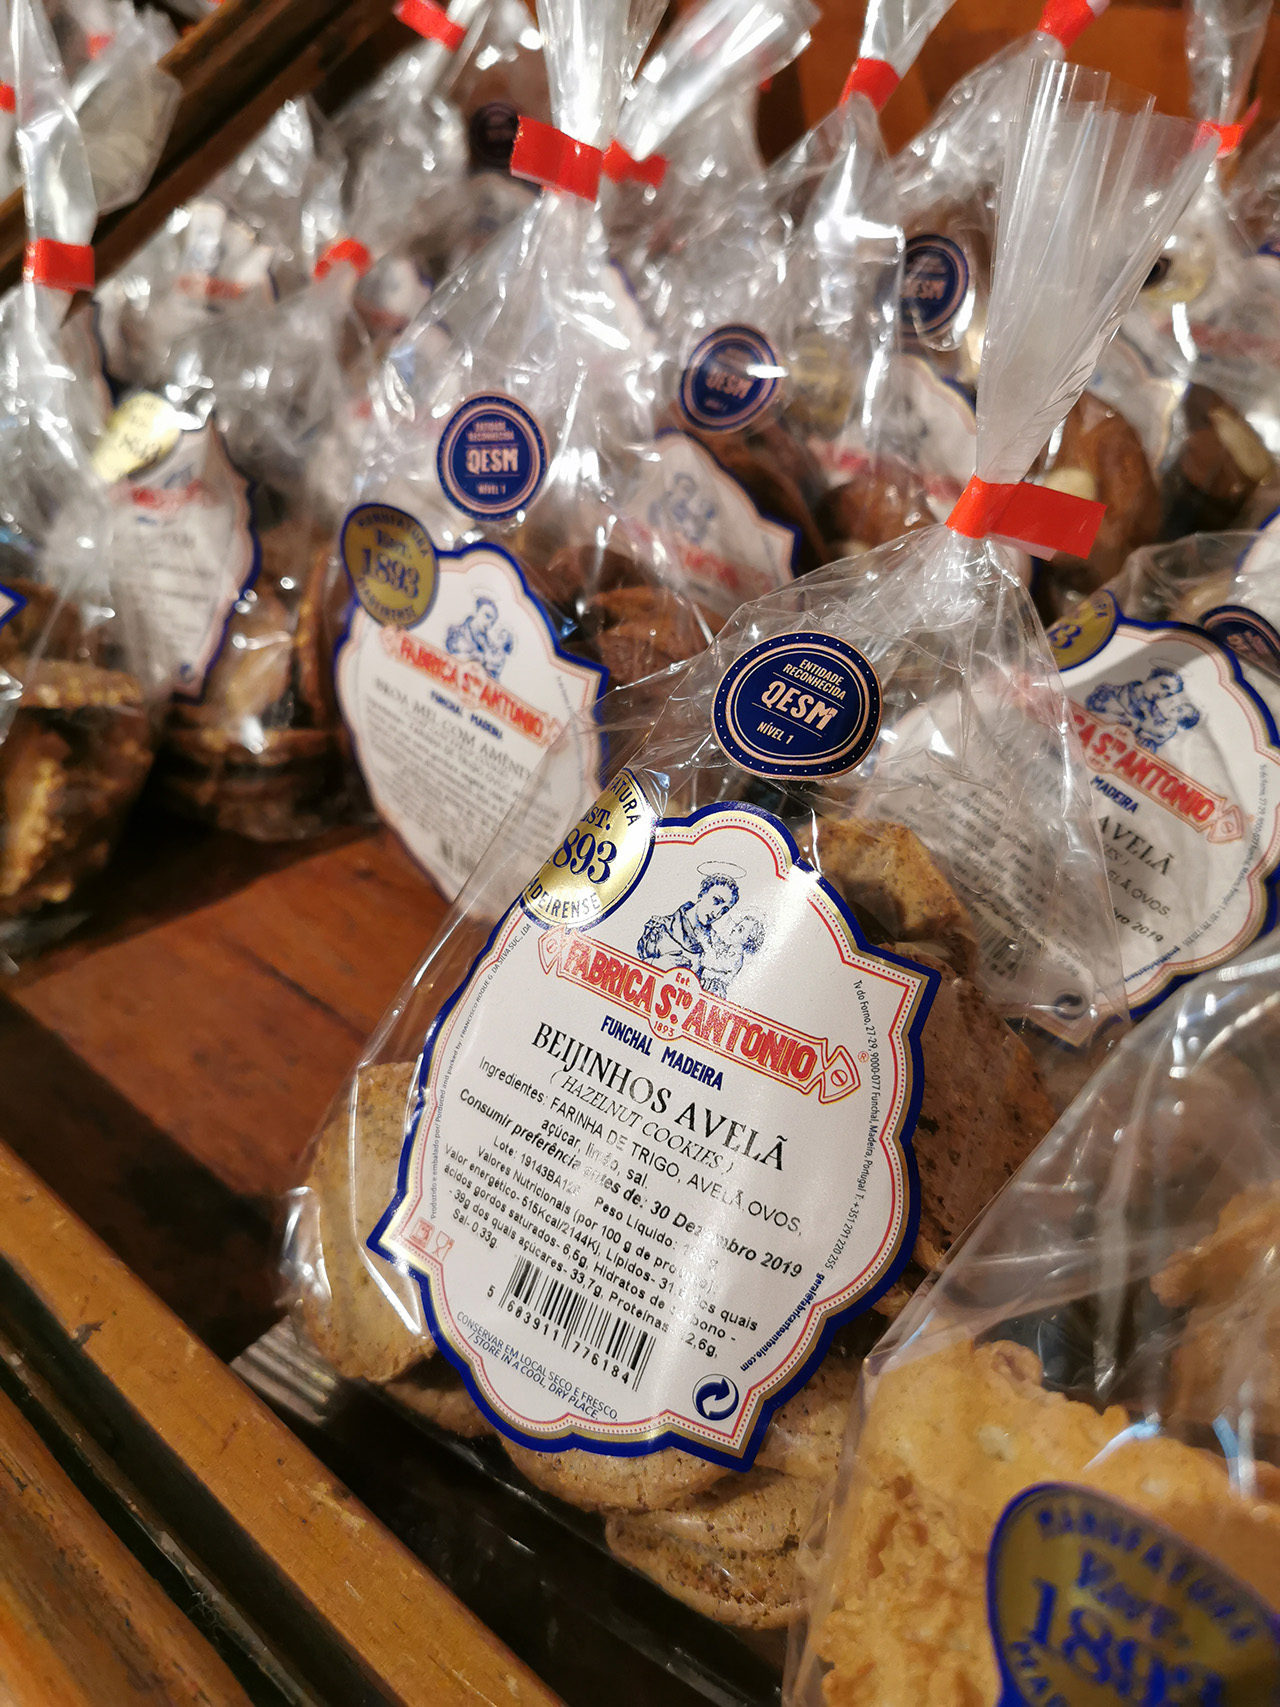 Tasty cookies that make for great souvenirs.